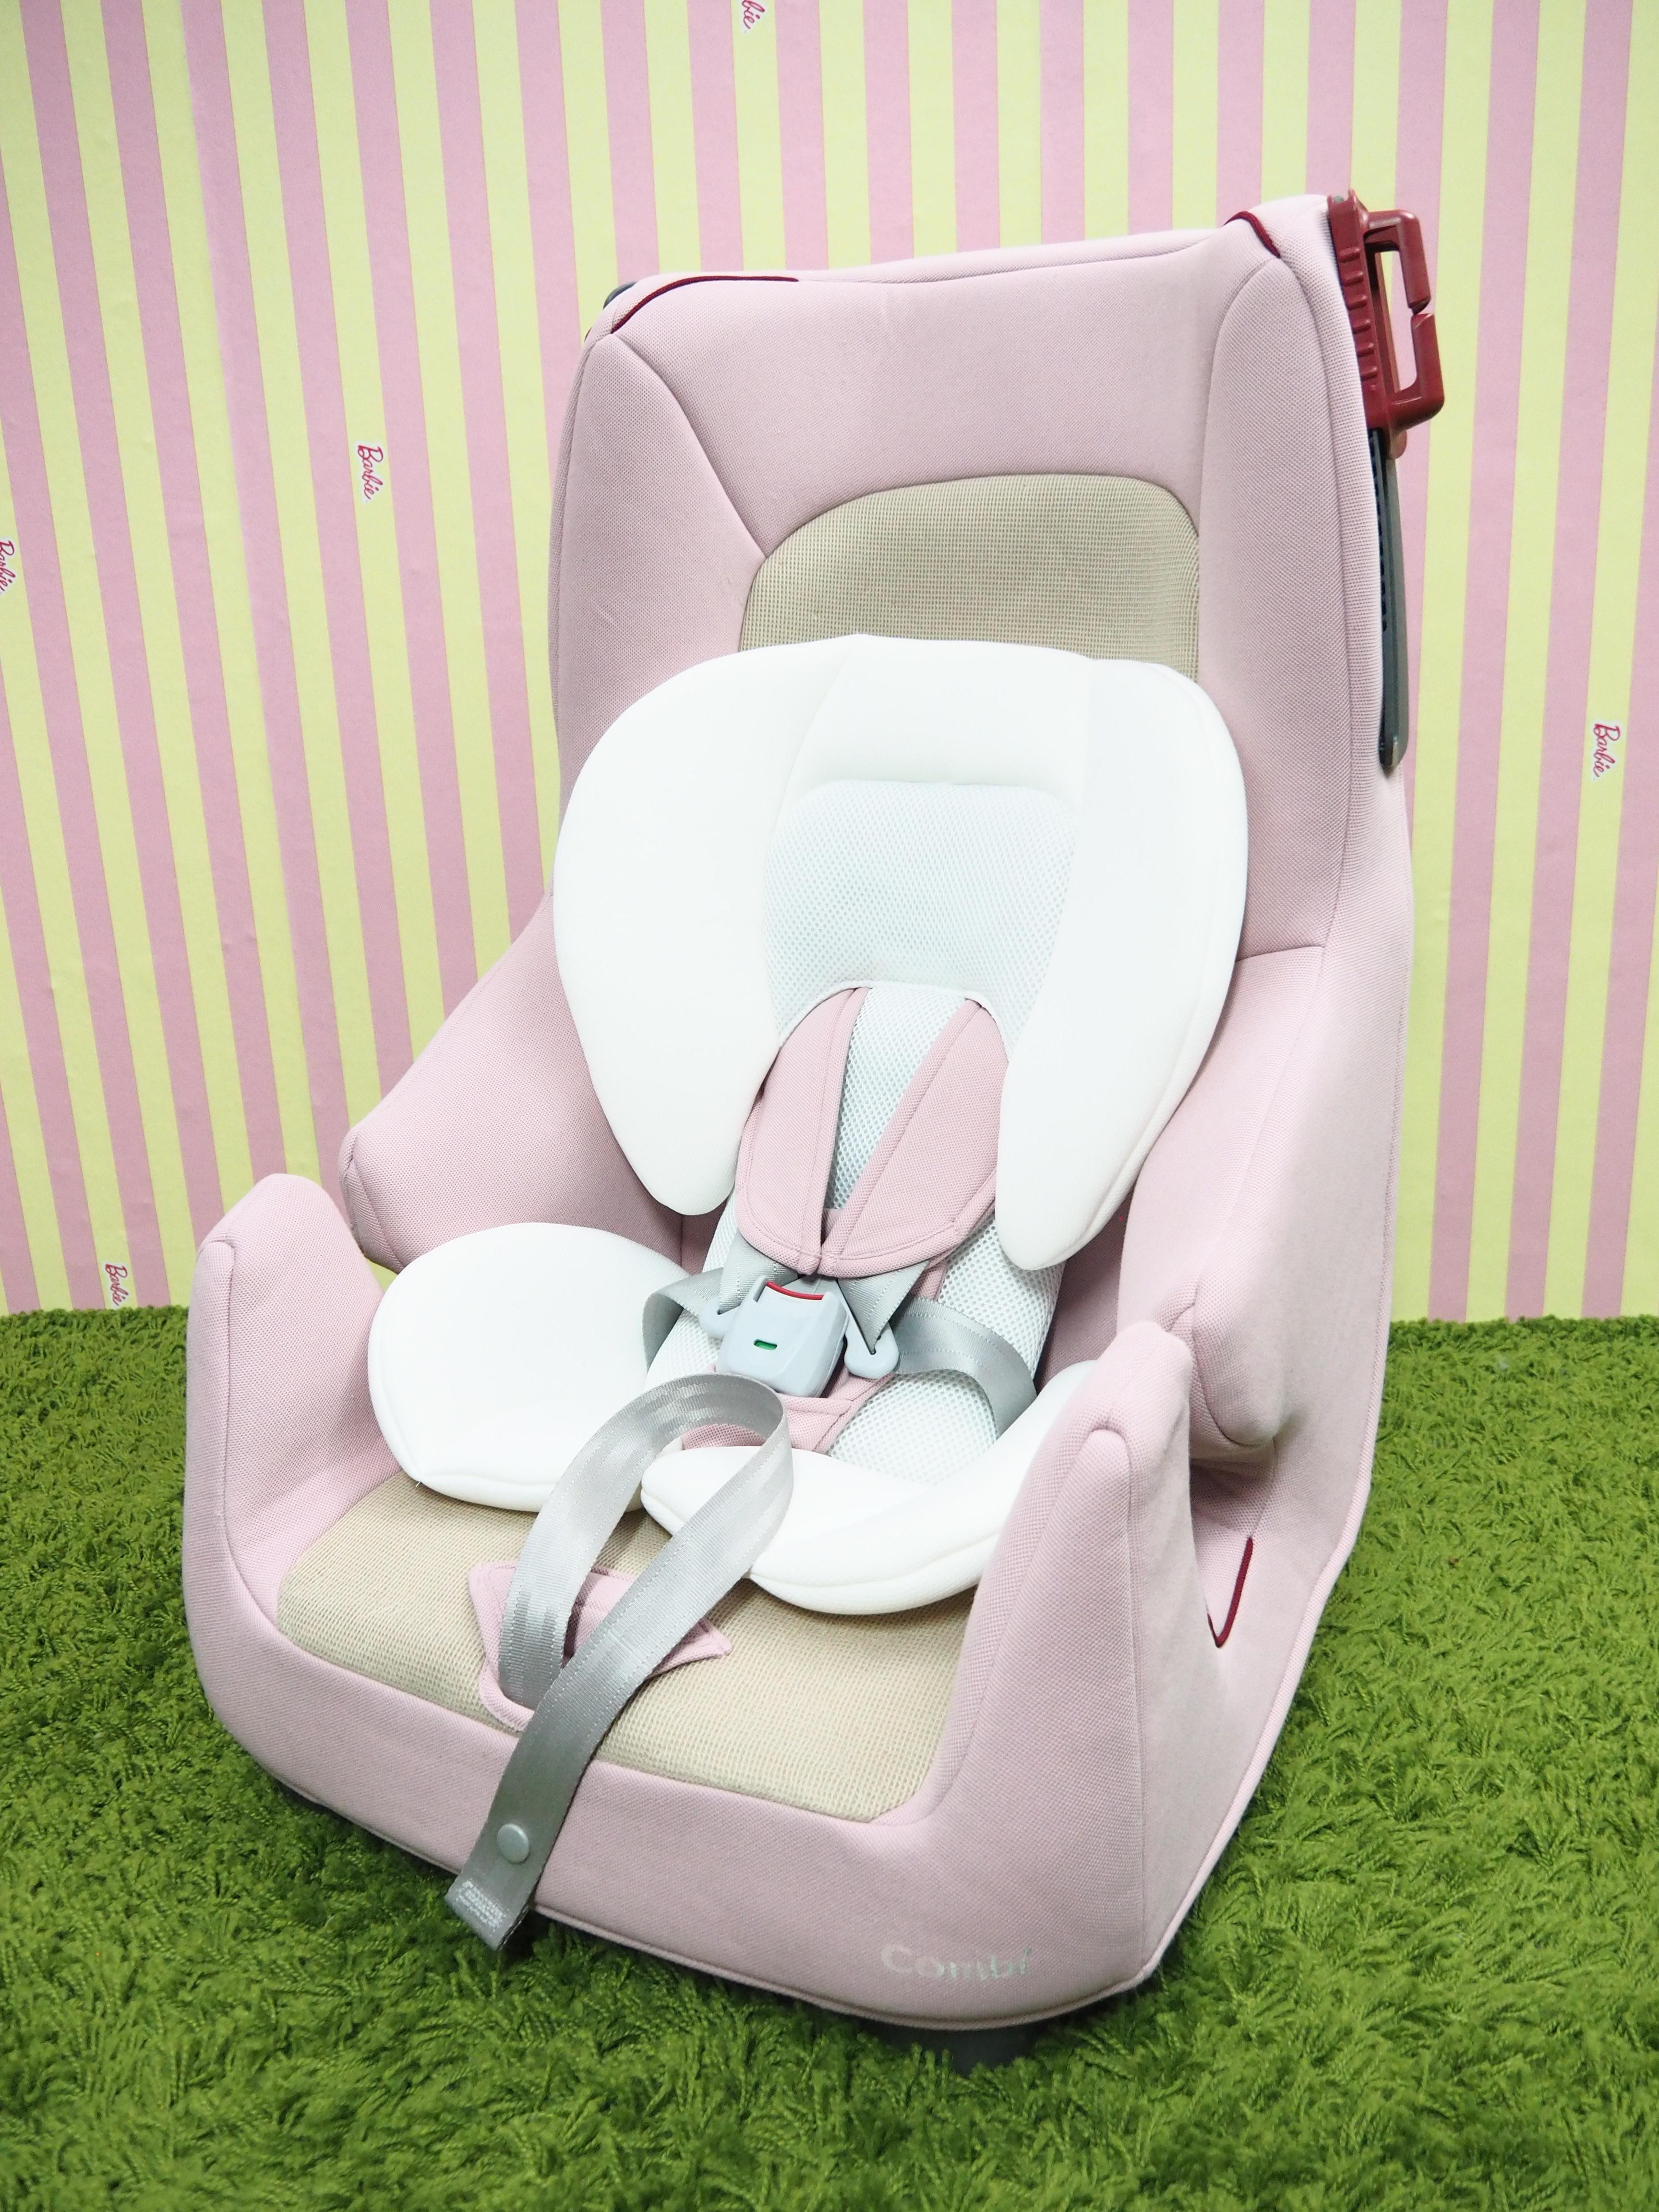 Carseat Combi รุ่น Harness fit long สีชมพู